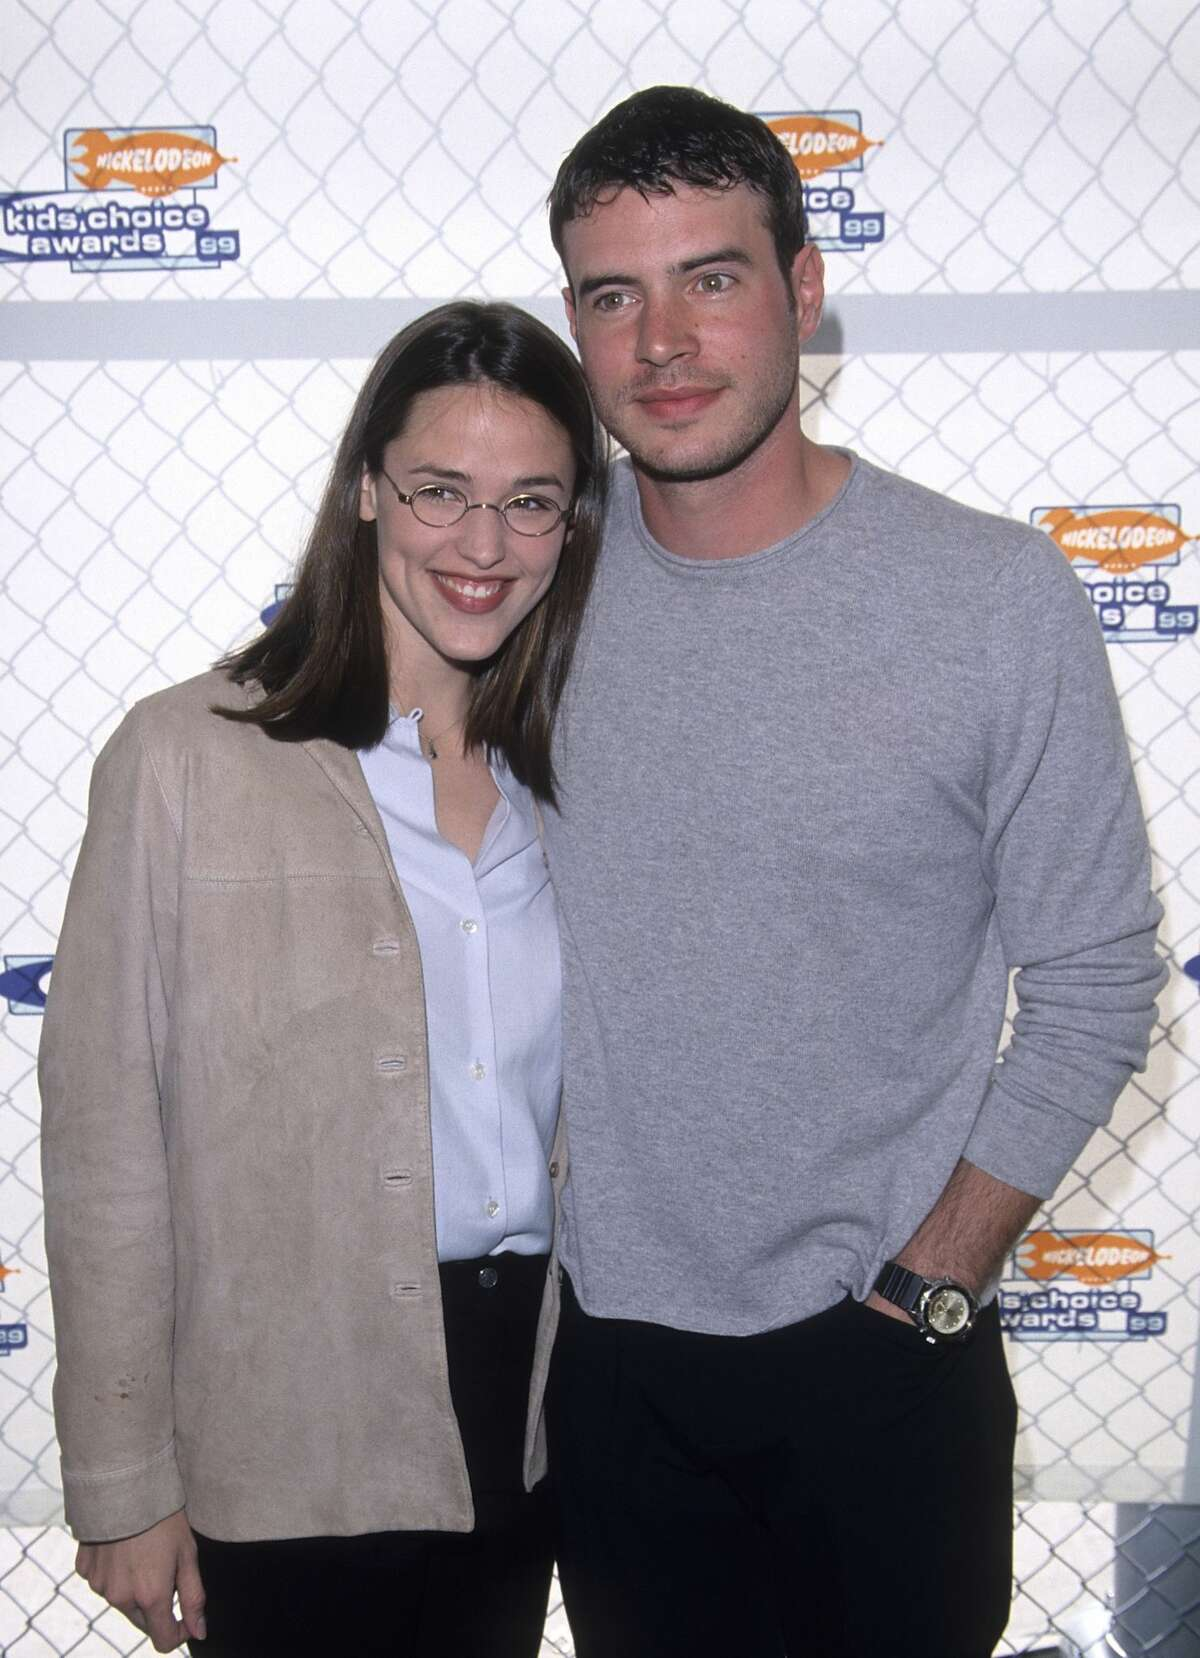 1990: Actress Jennifer Garner and actor Scott Foley attend the 12th Annual Nickelodeon's Kids' Choice Awards on May 1, 1999 at Pauley Pavilion, UCLA in Westwood, California.